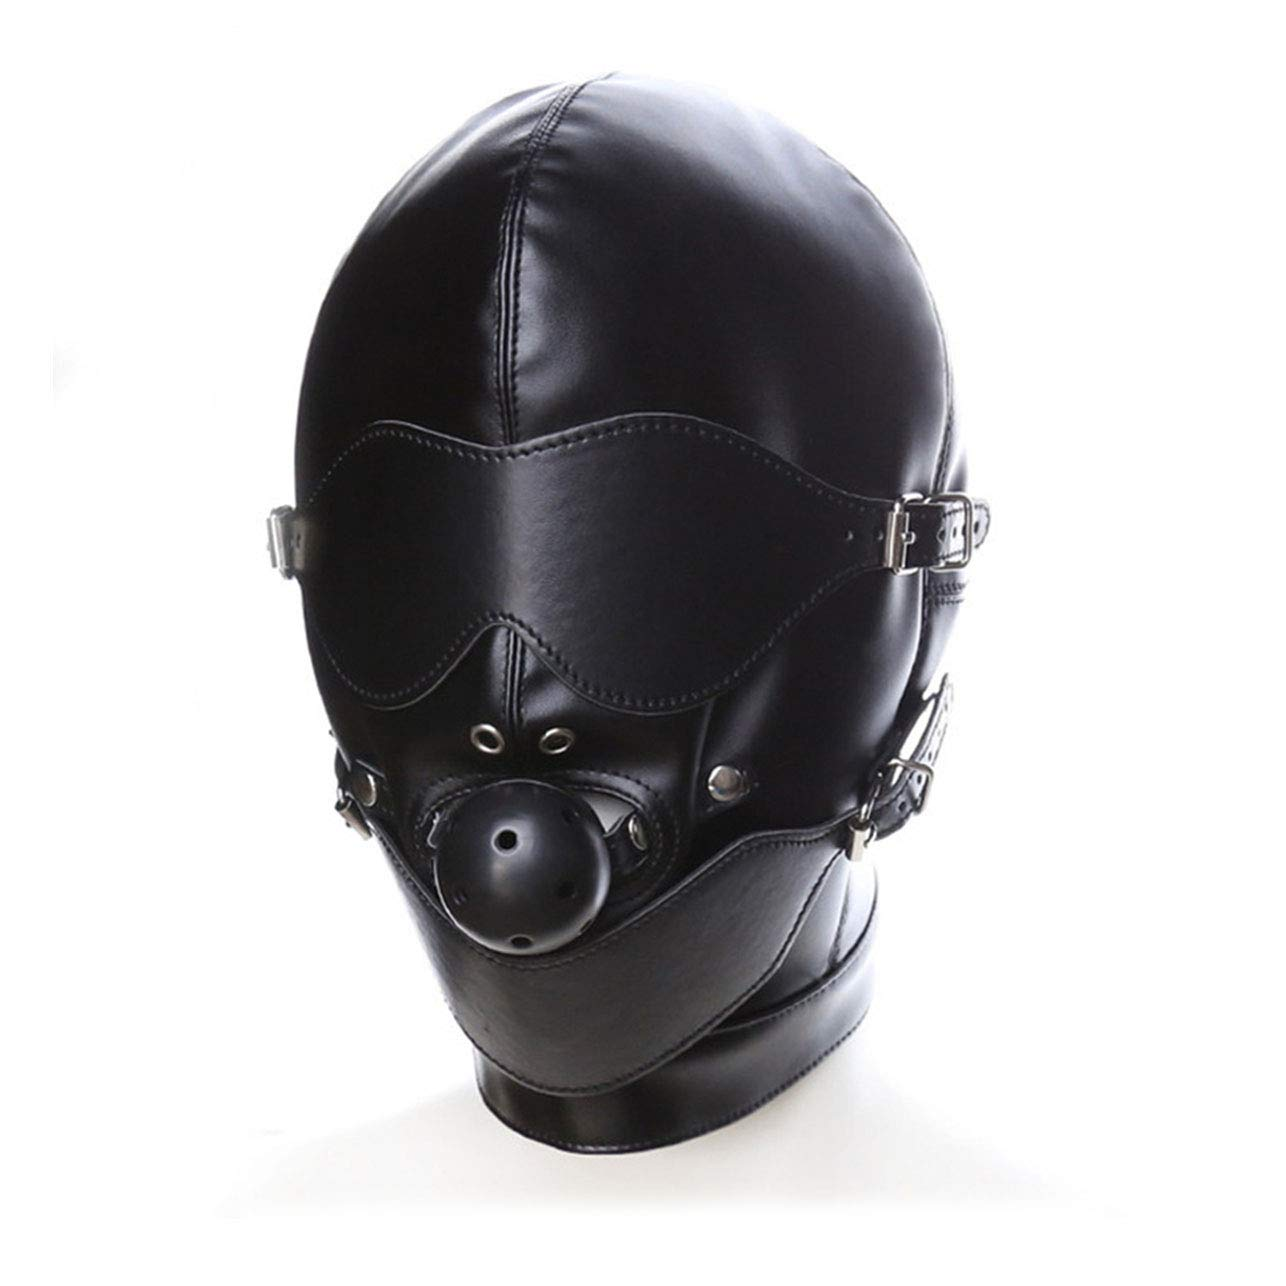 Santchcz Sex Mask Fetish BDSM Leather Head Hood Bondage Mouth Ball Gag Eye Mask Sex Products Erotic Costumes Toys for Couples Women Black by Santchcz